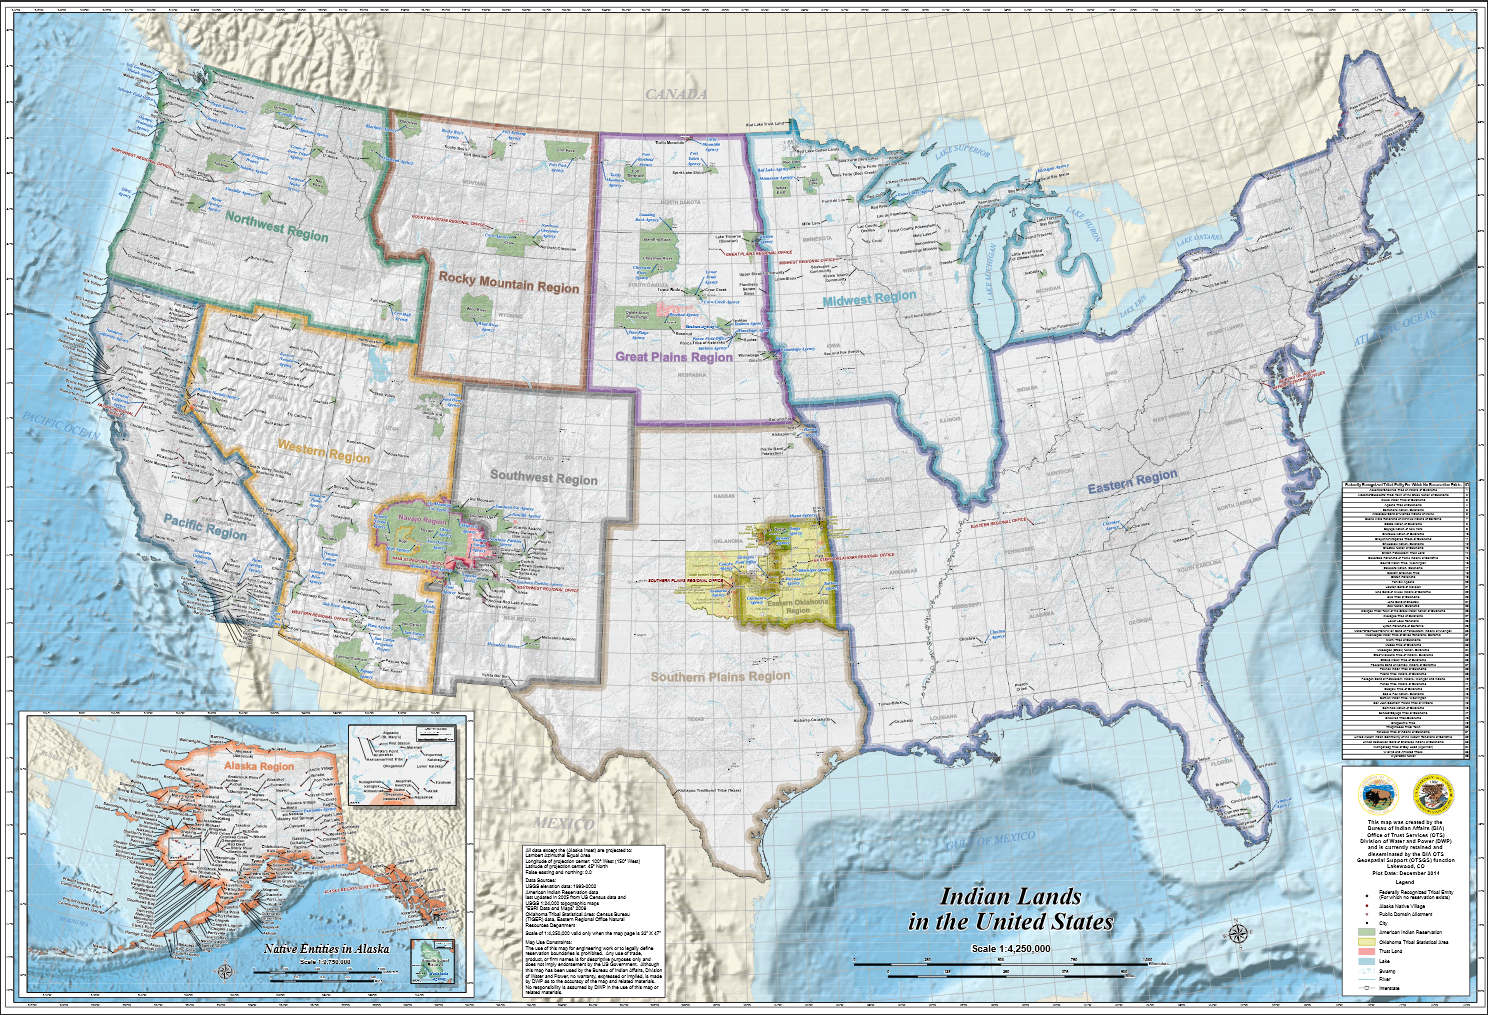 Map Of Indian Reservations Tribal Nations Maps   Data.gov